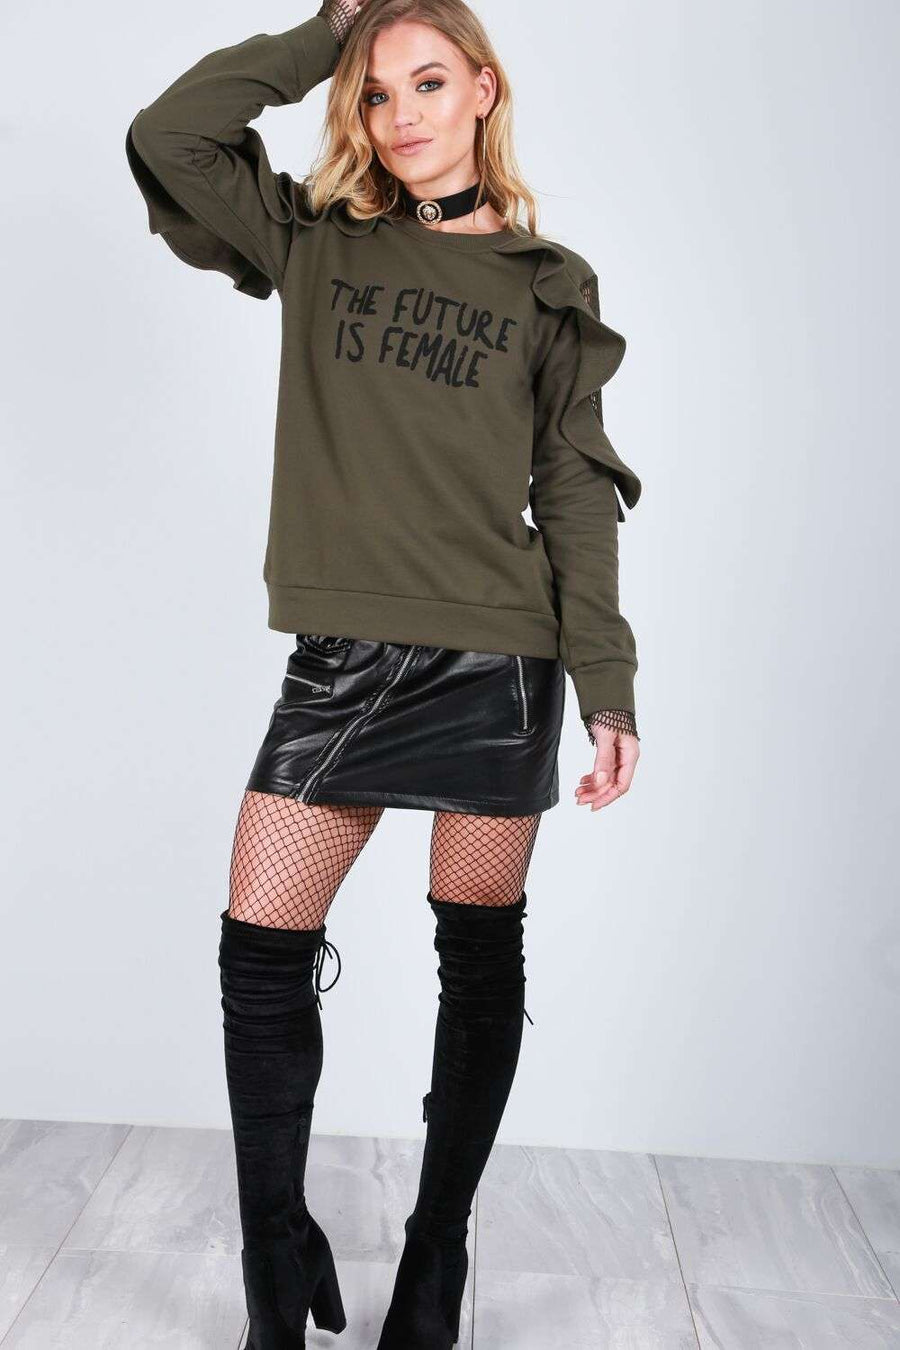 Evie Fishnet Slogan Sweater - bejealous-com